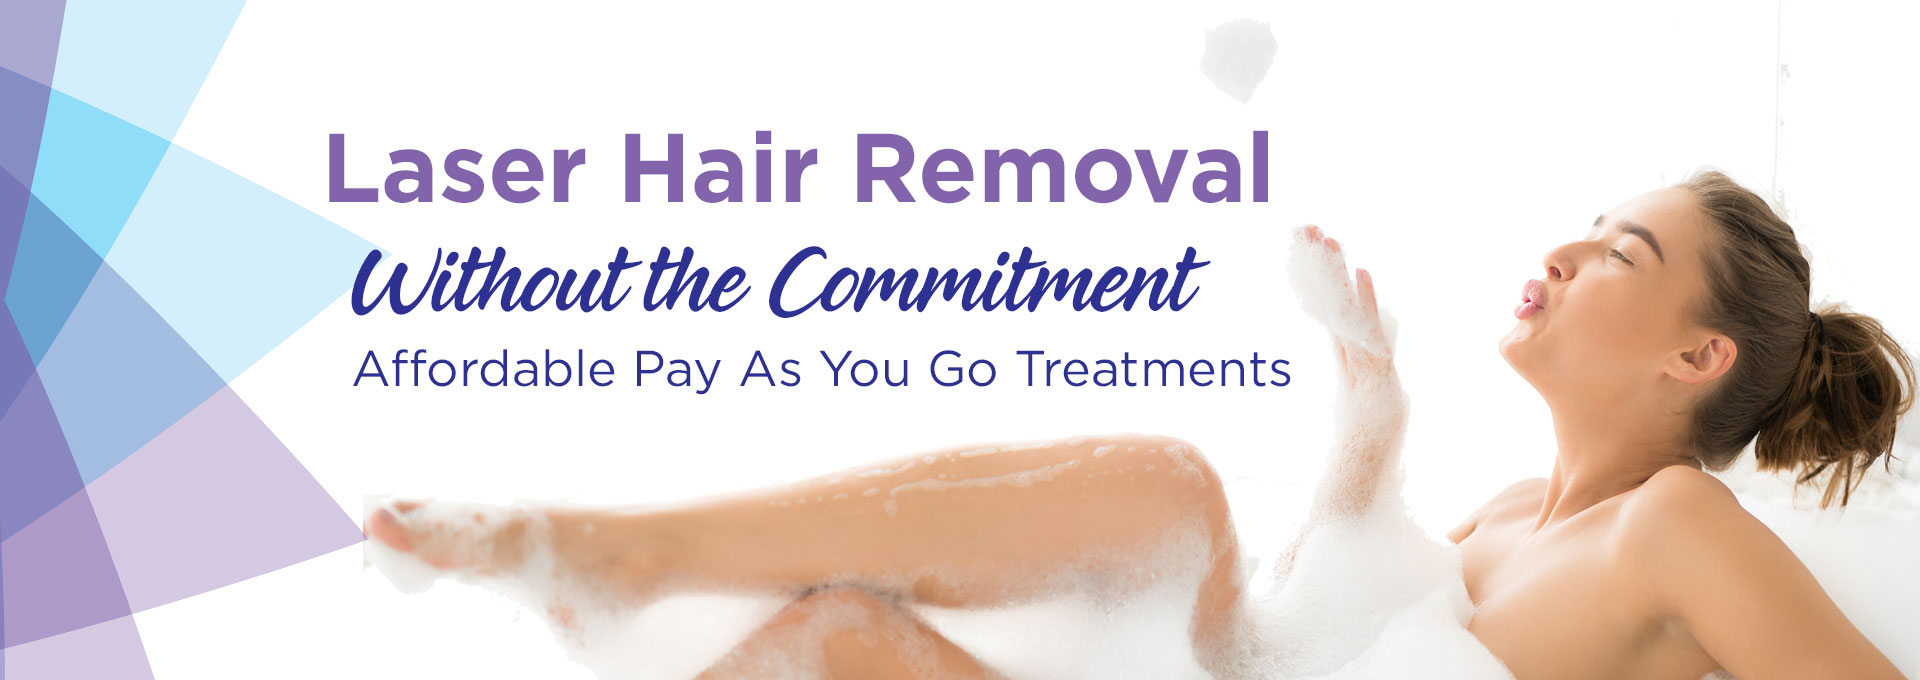 laser hair removal bucks county